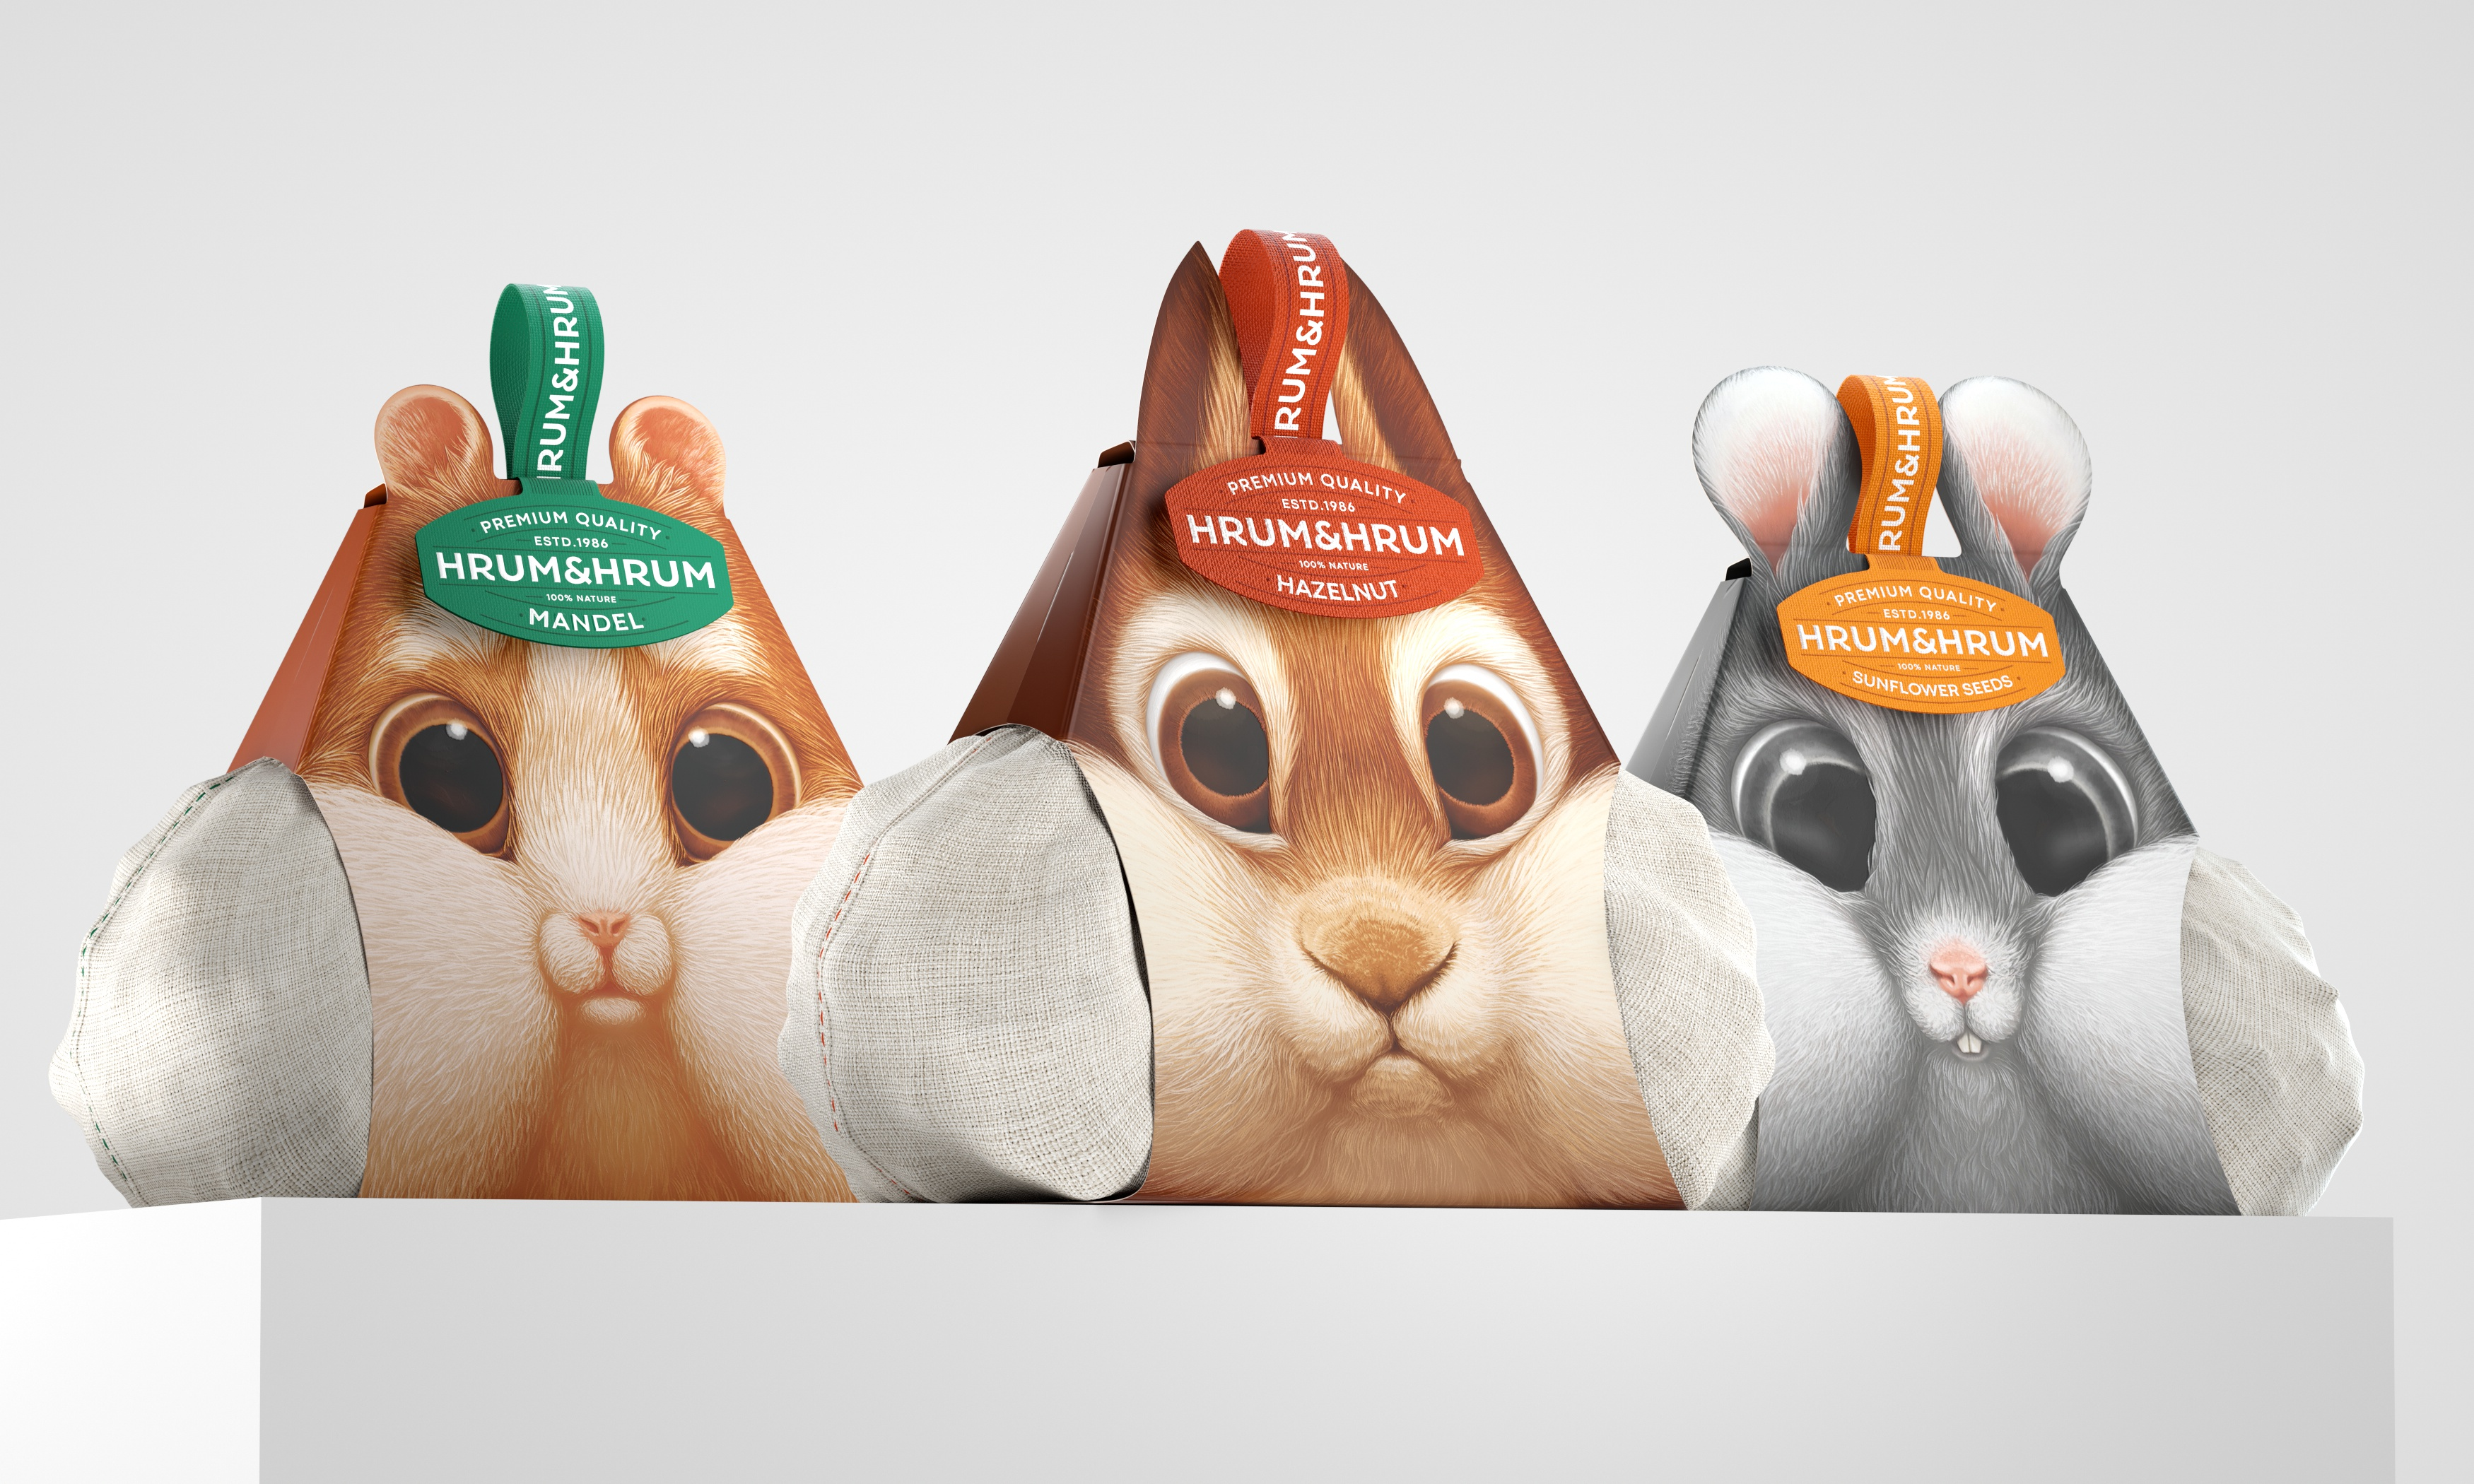 Nuts and Seed Concept Packaging Designed by Constantin Bolimond